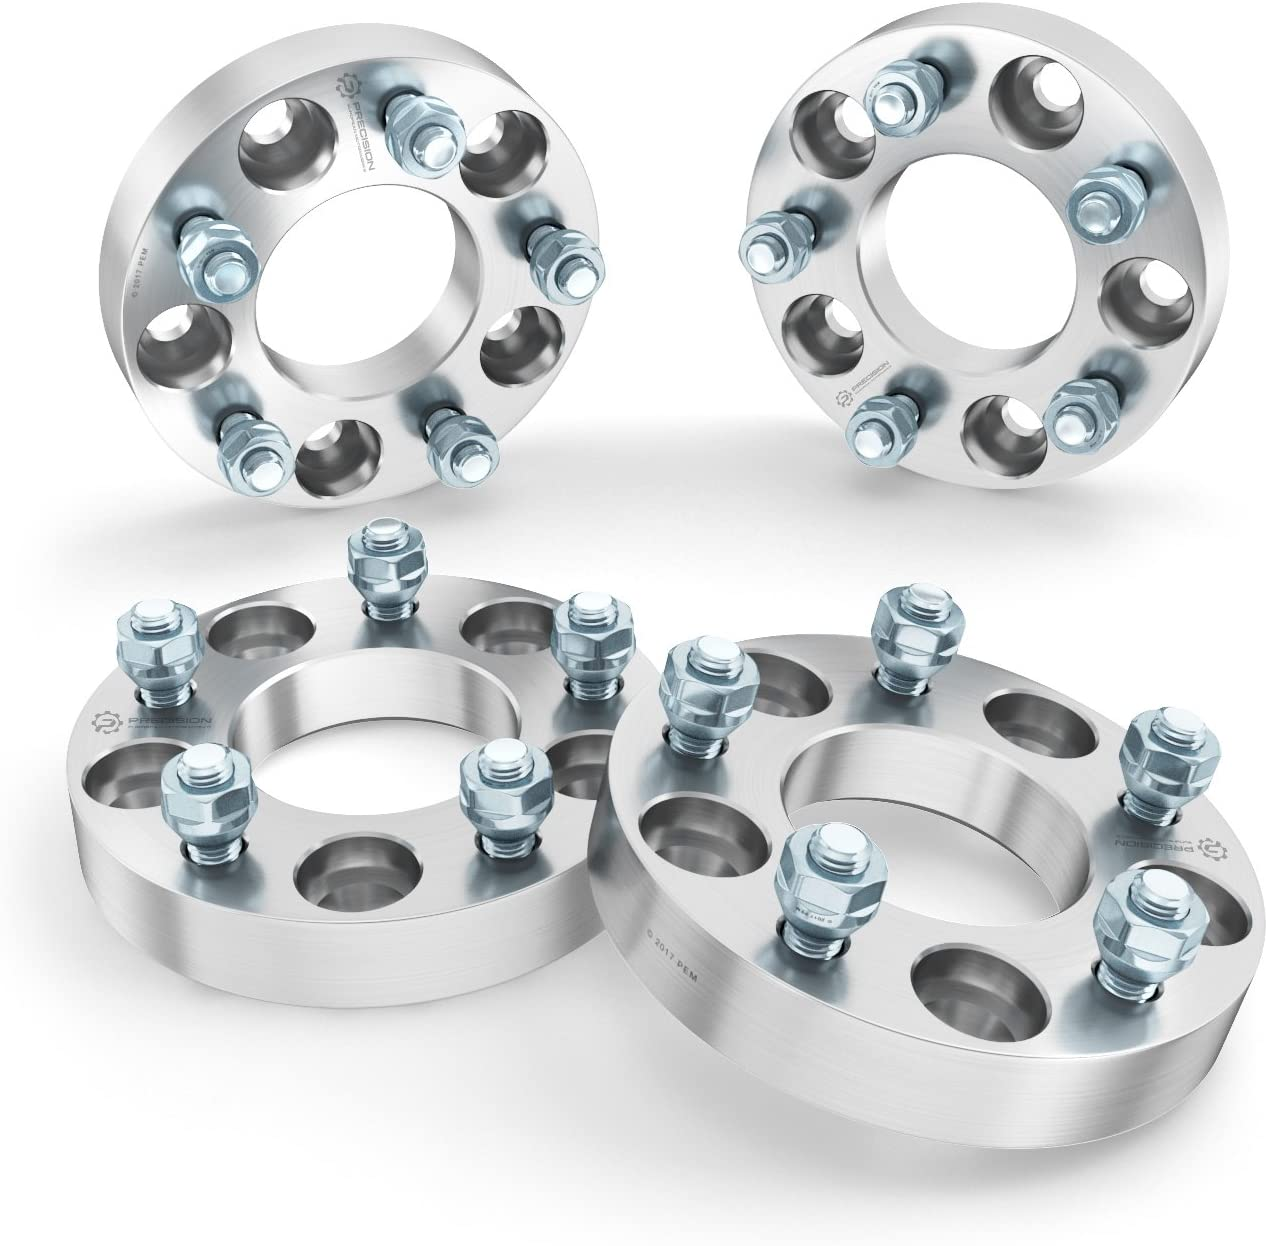 Changes Bolt Pattern 2pcs Silver RockTrix 32mm Thick Metric 12x1.5 Studs Nuts 1.25 inch Wheel Adapters Spacers 5x5 to 5x4.5 5x127 to 5x114.3 78.3mm Bore